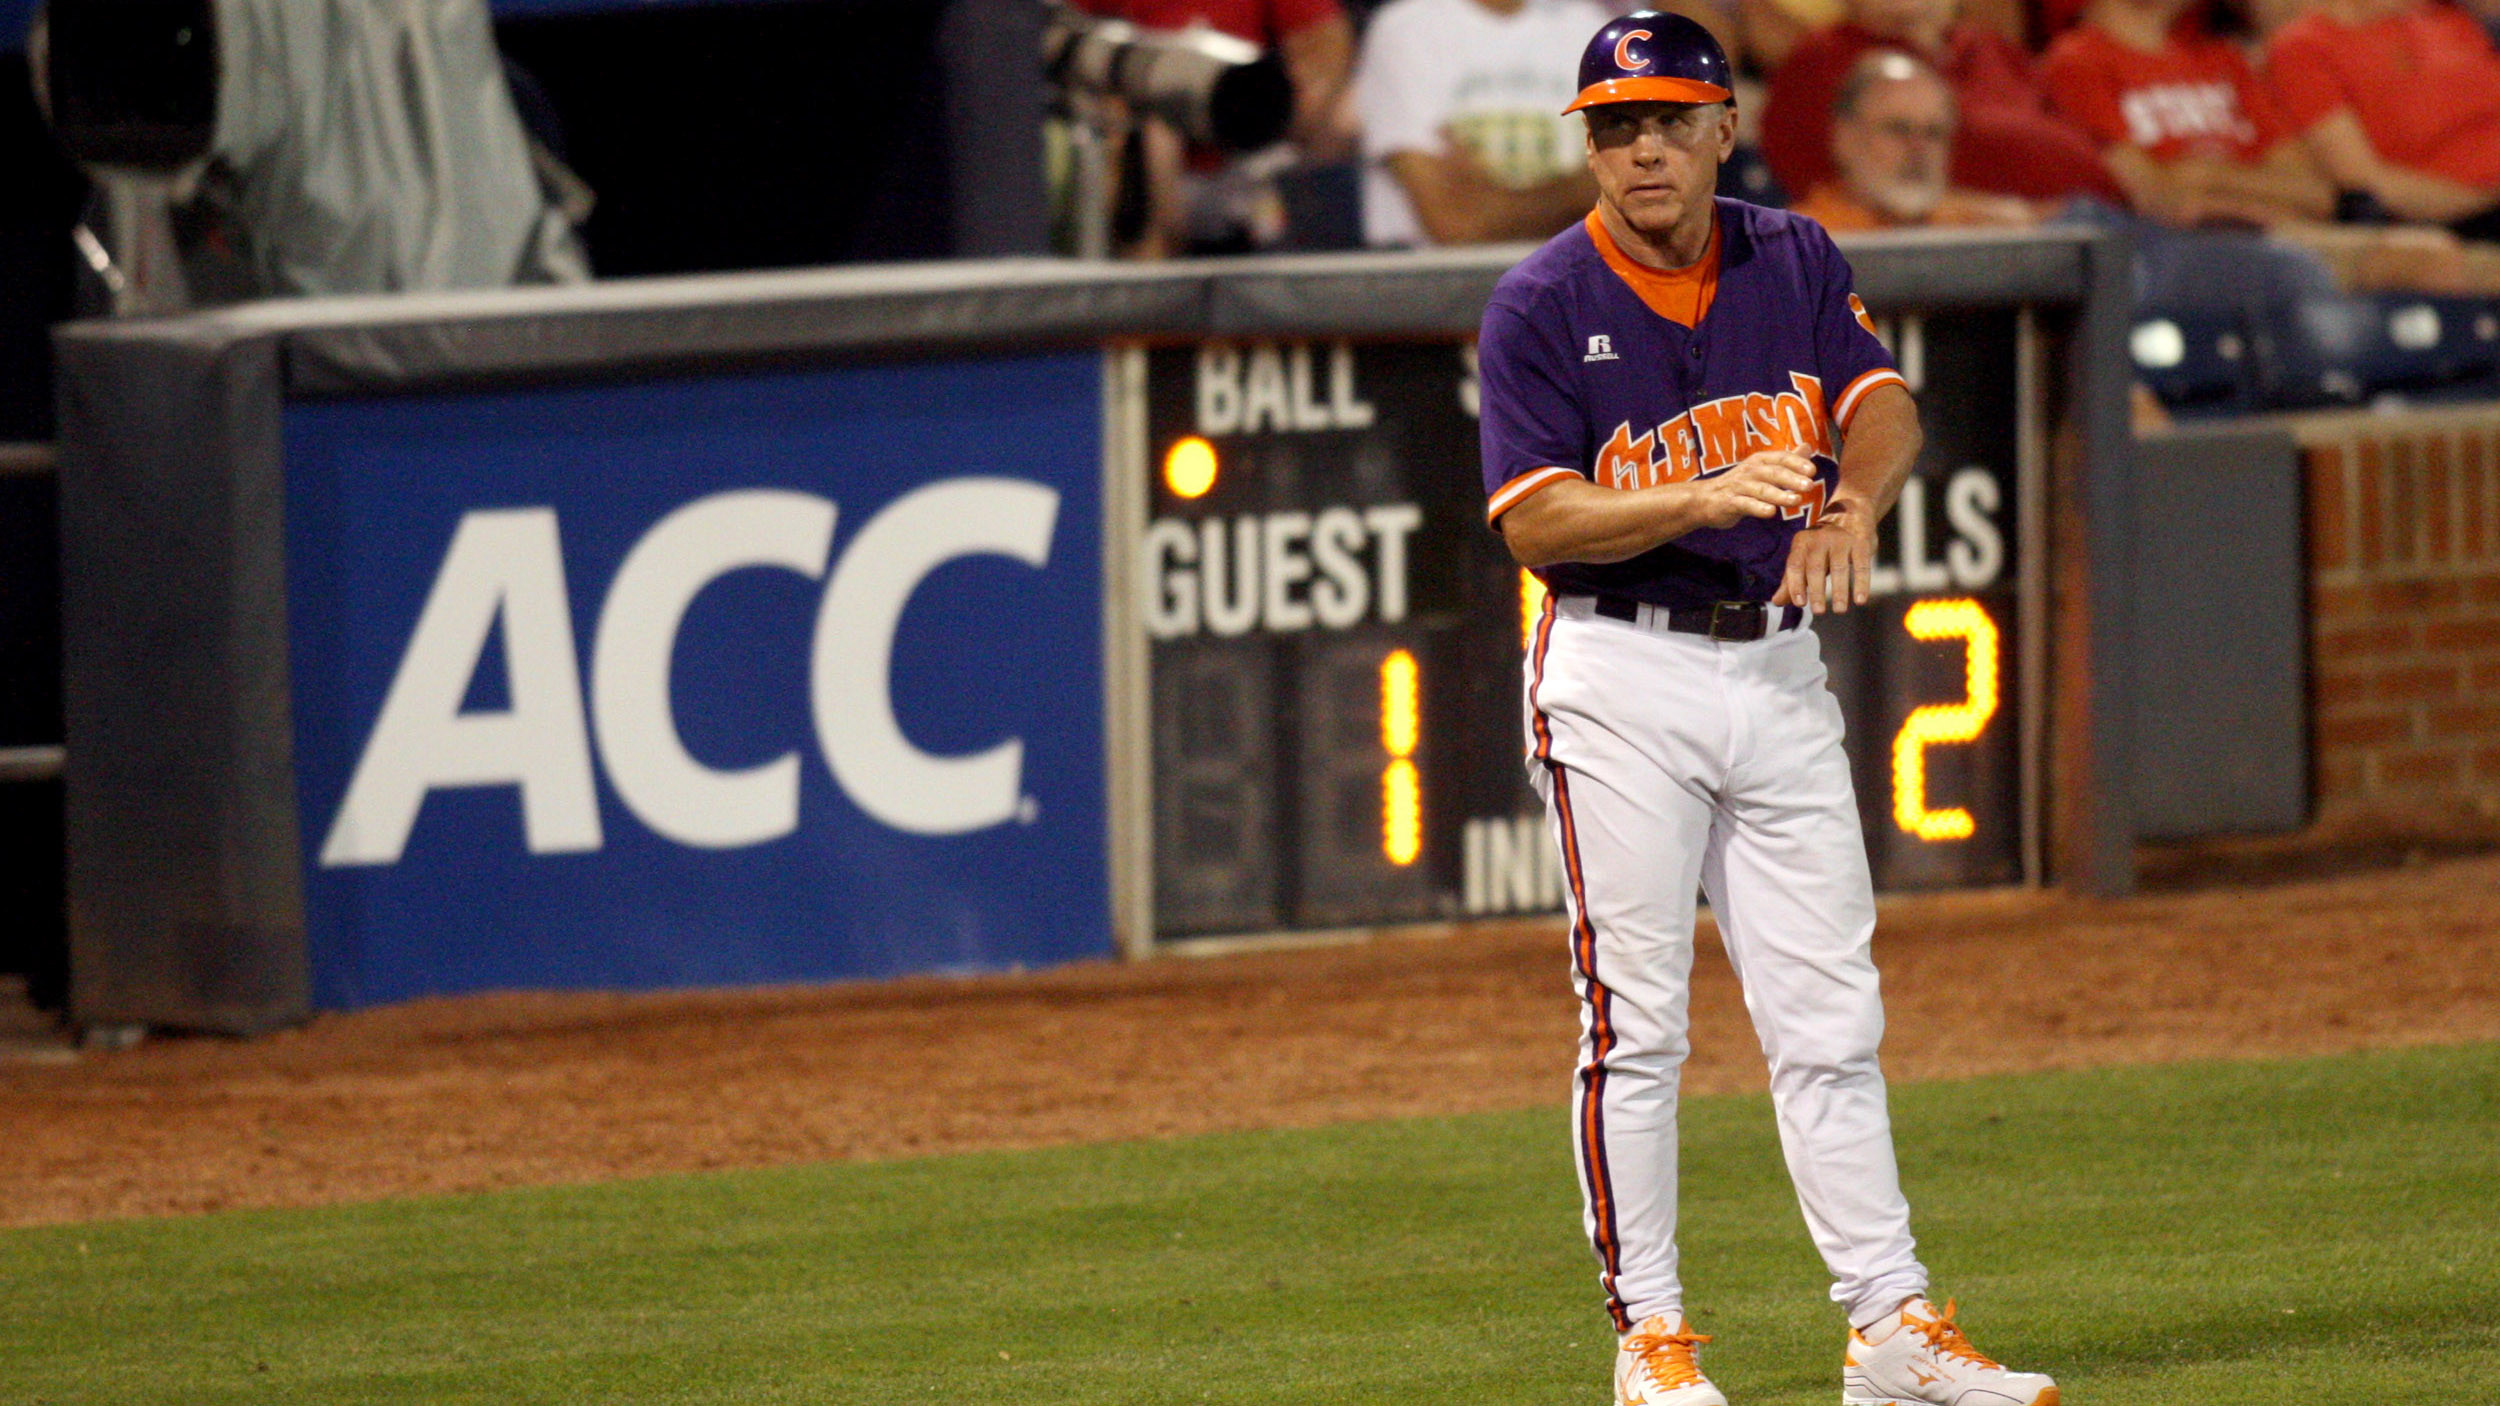 EXCLUSIVE: Missed Opportunities Cost Tigers in Tourney Opener